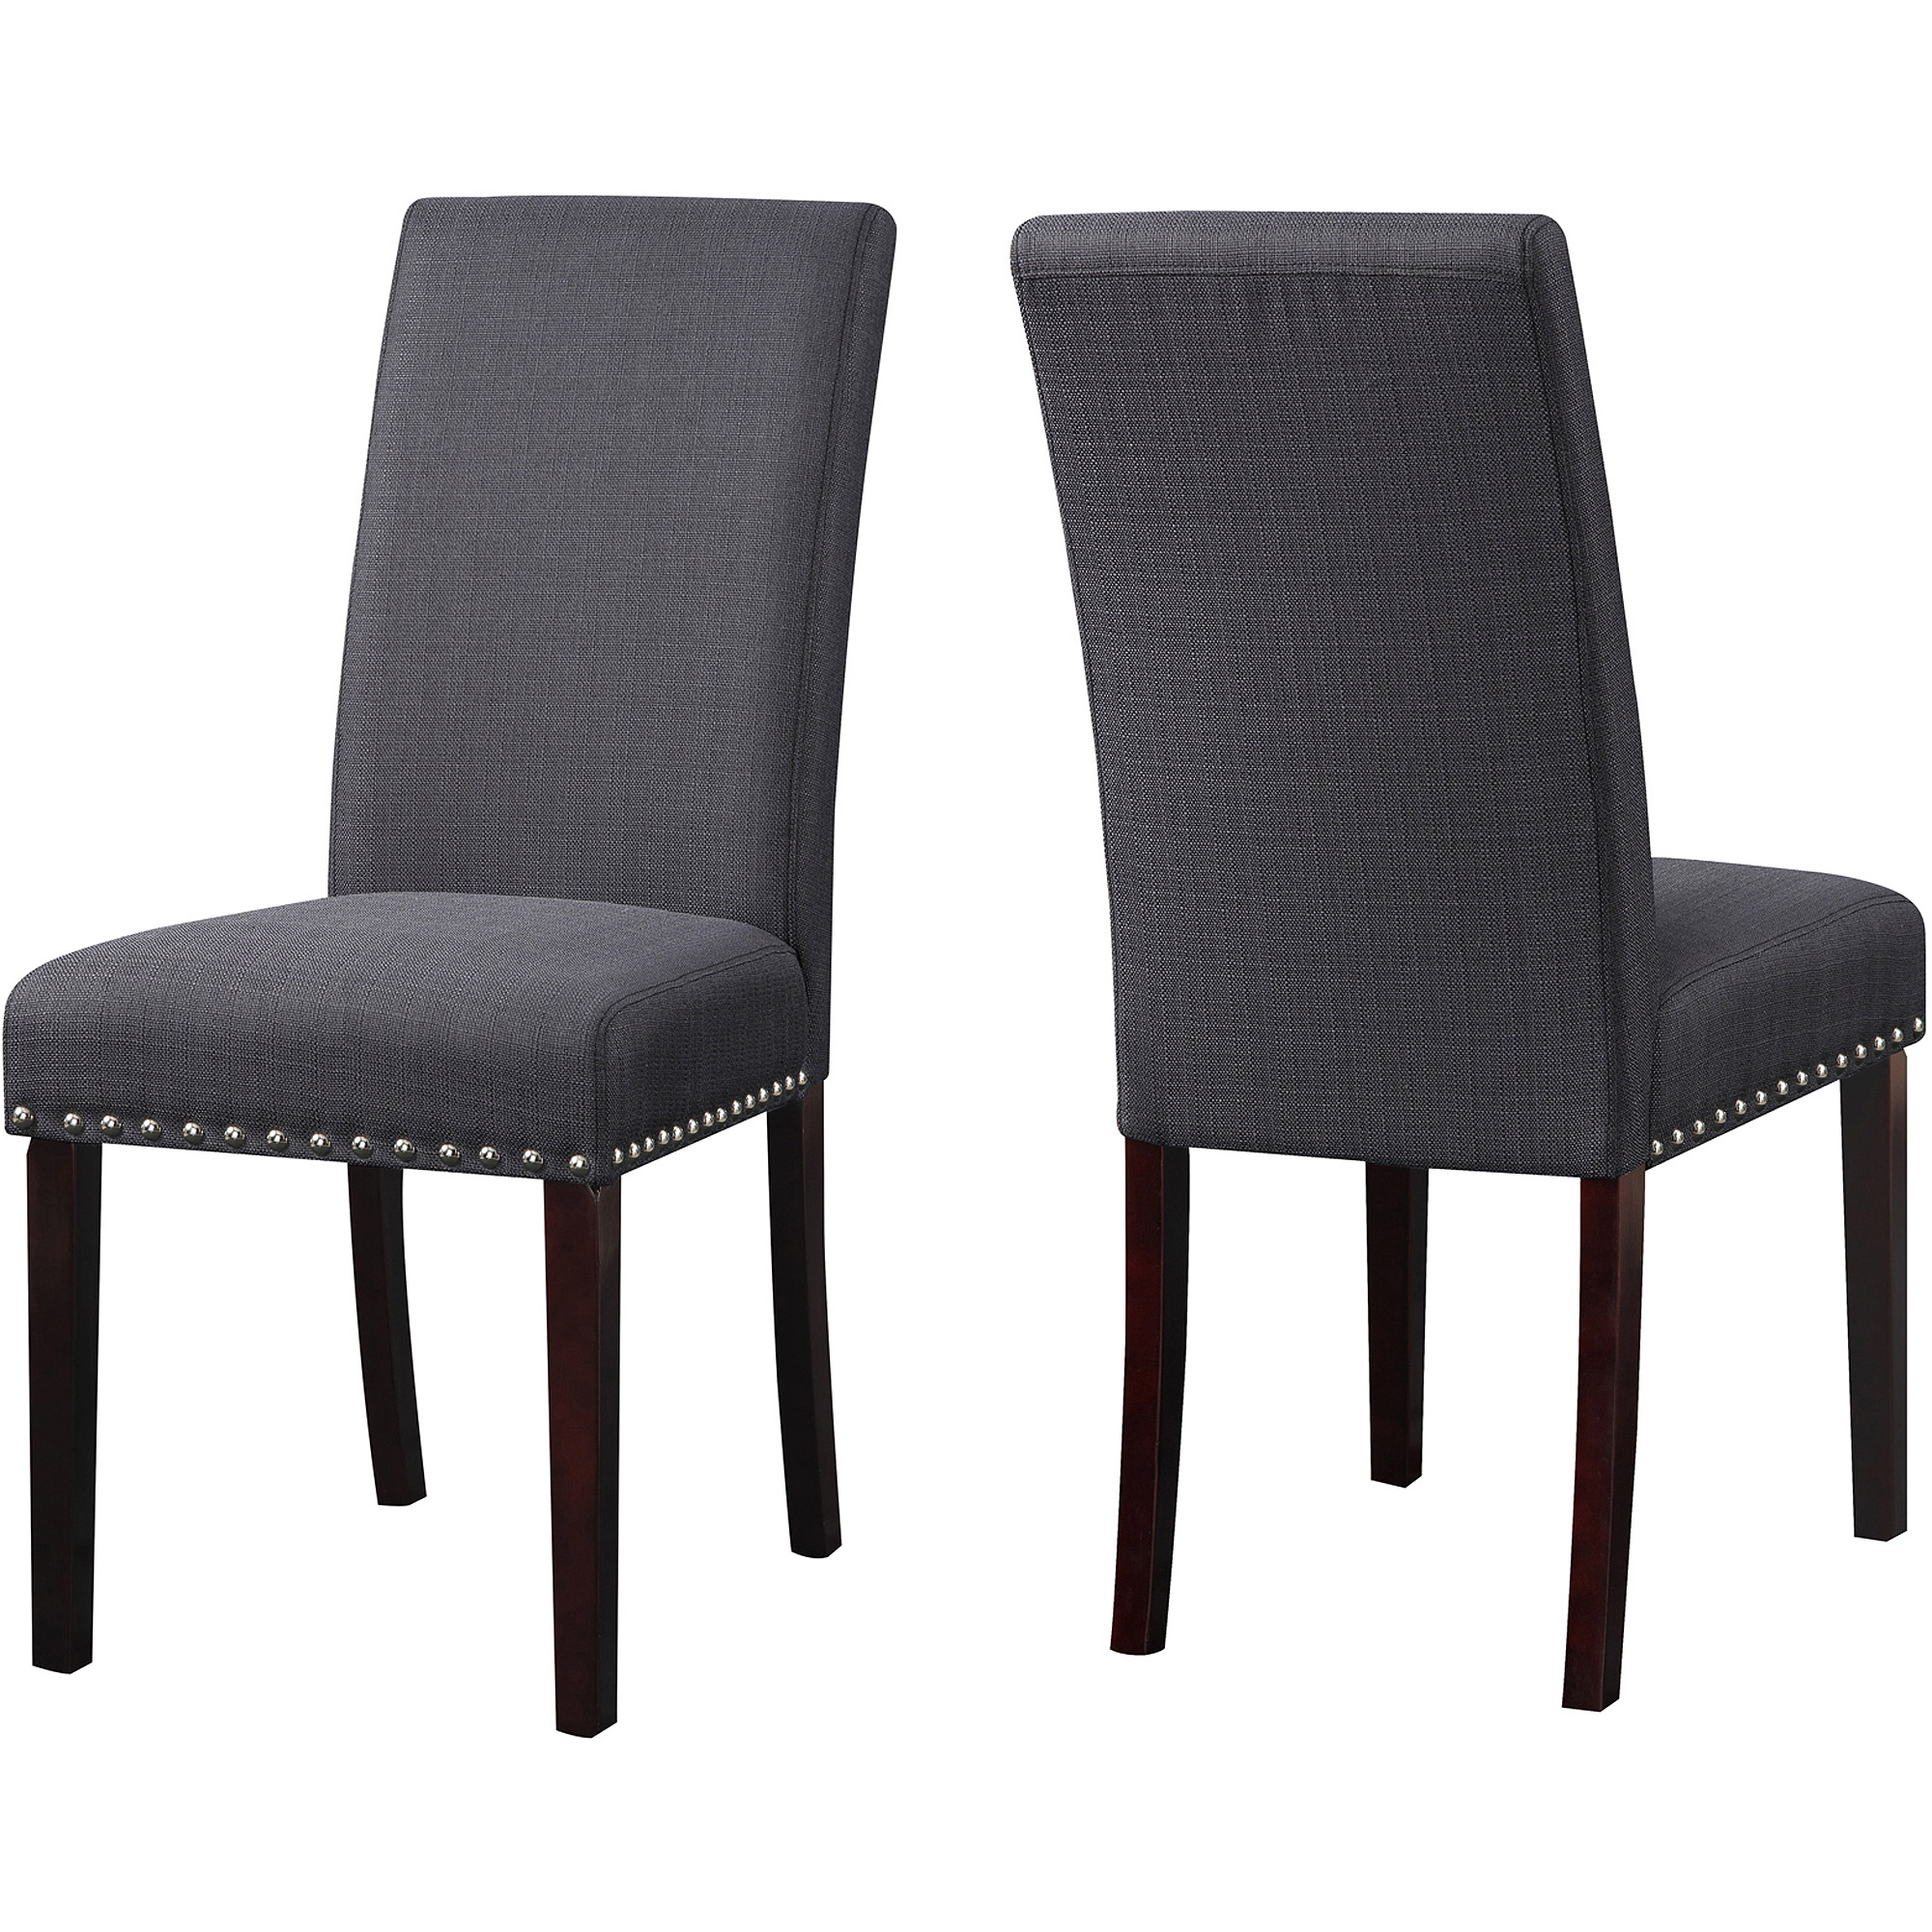 dhi nice nail head upholstered dining chair, 2 pack, multiple colors Dining Room Chairs